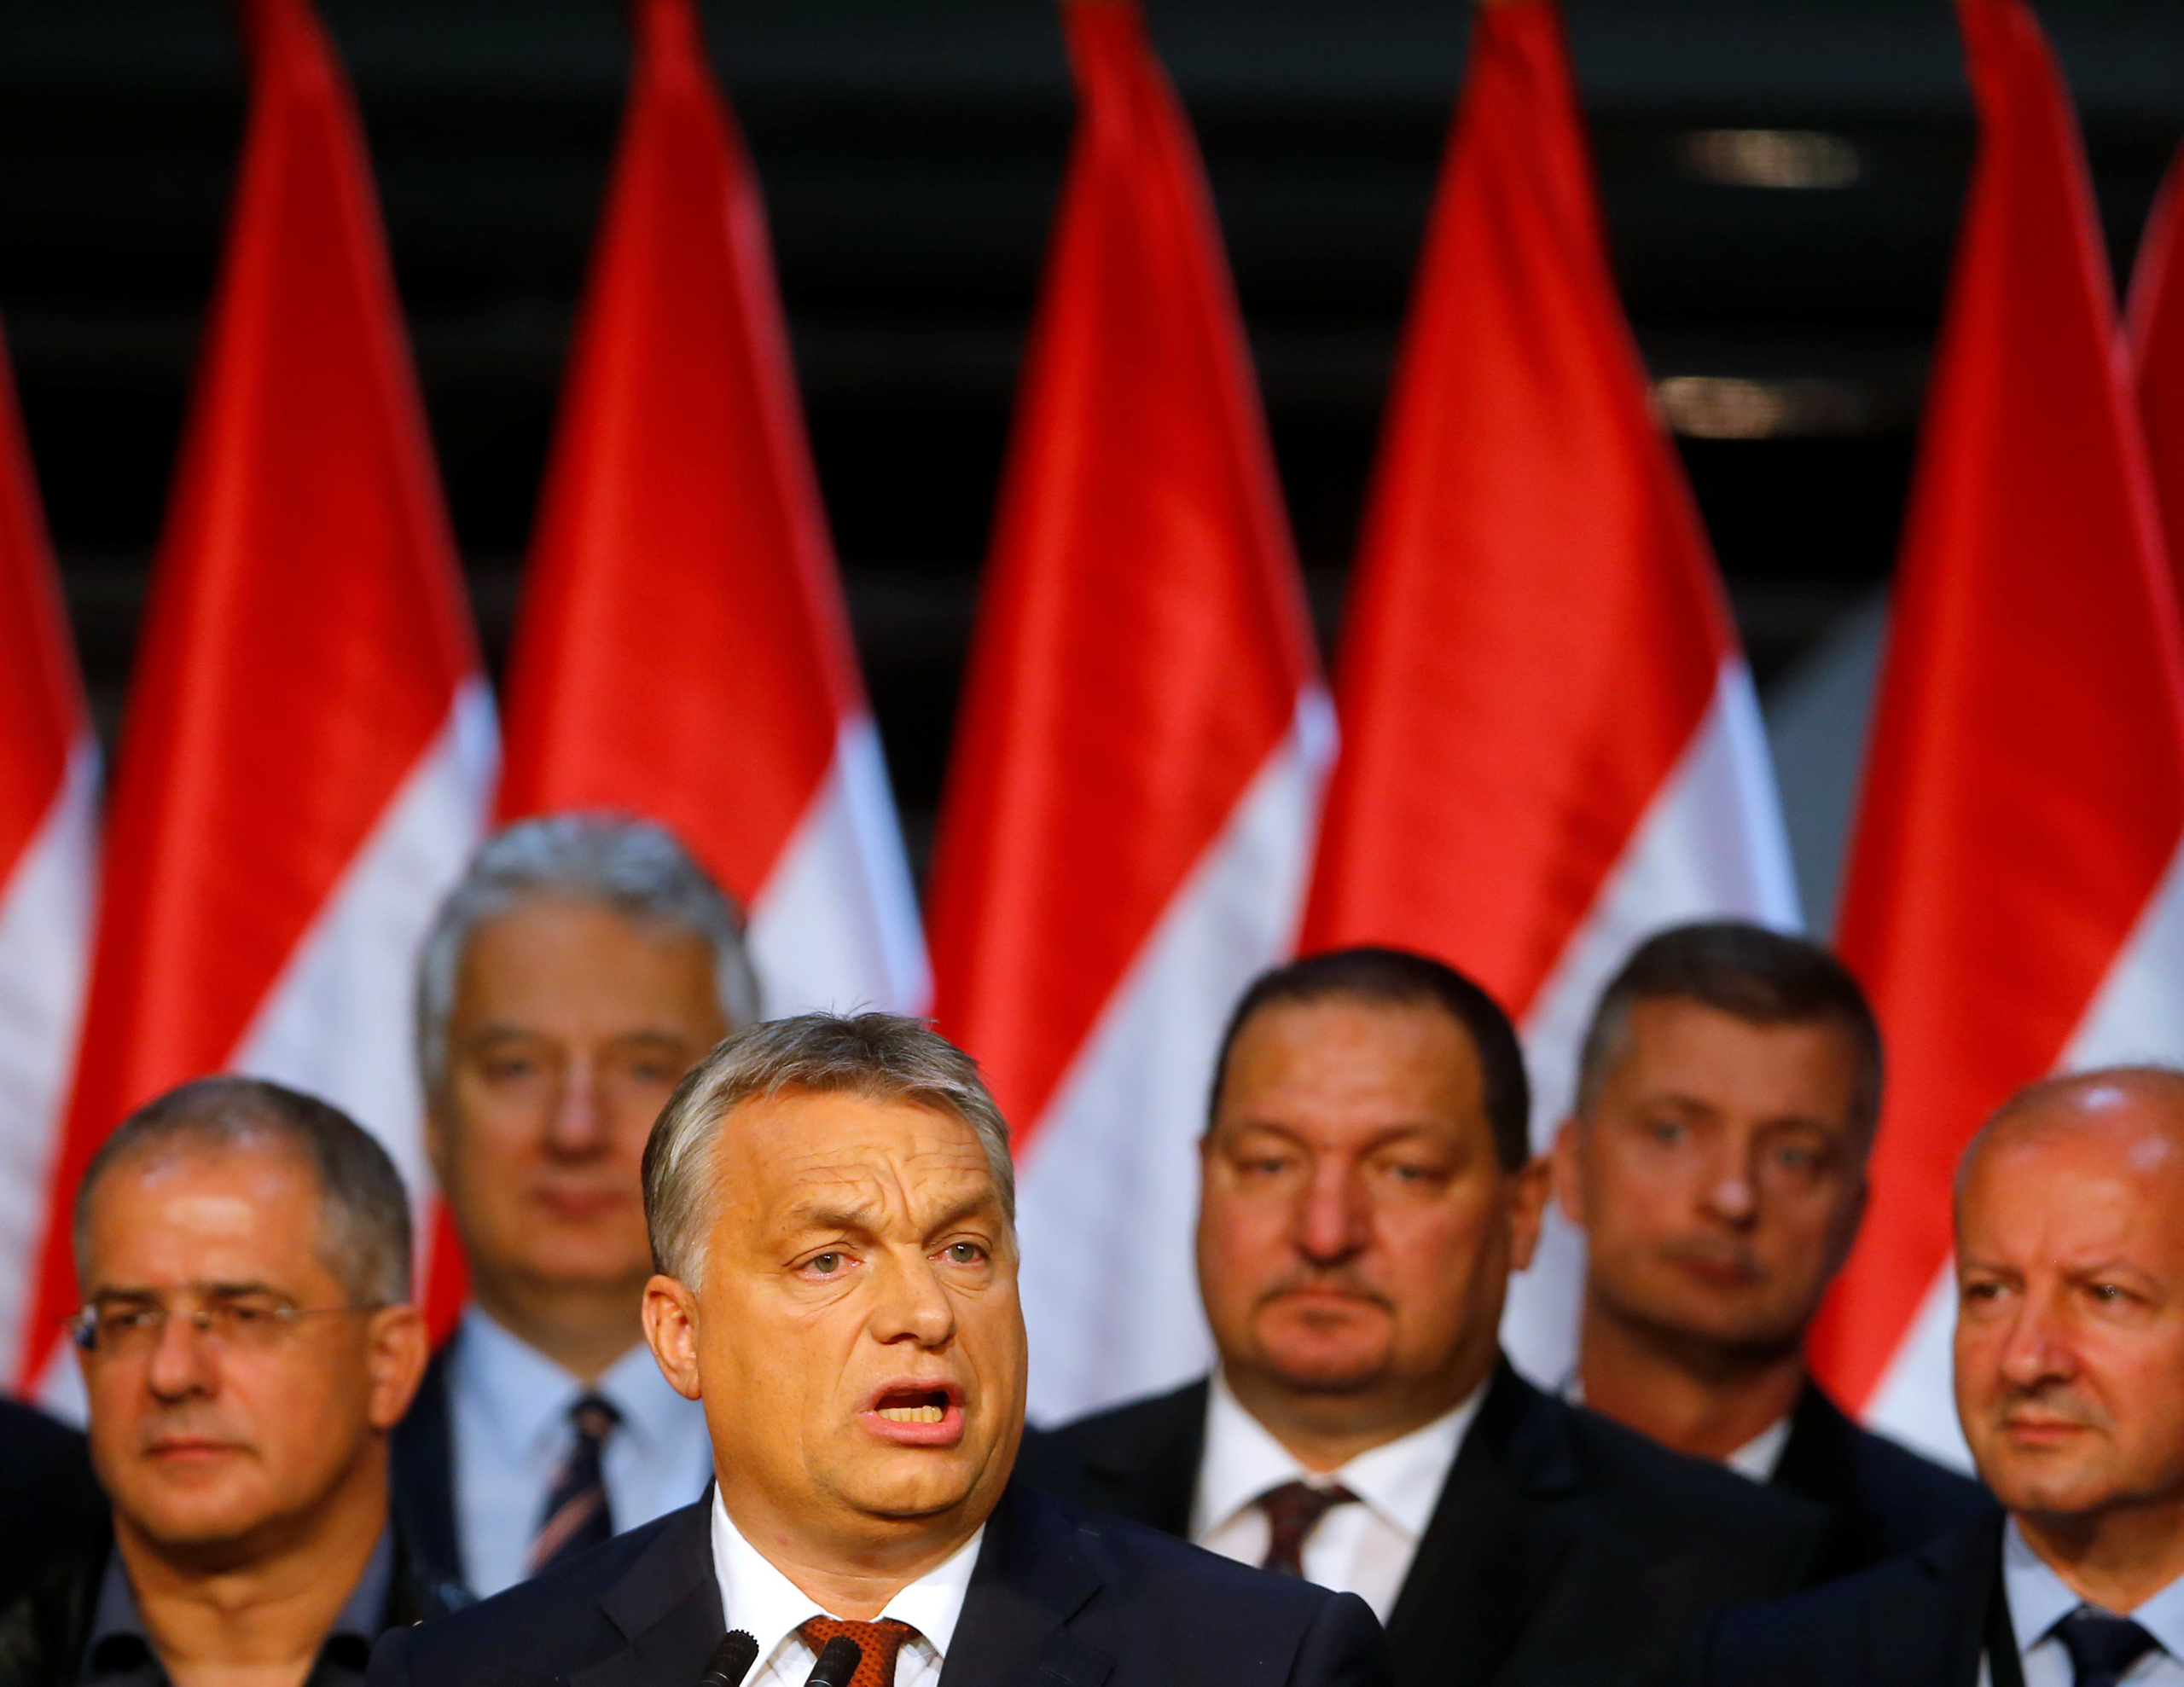 Hungarian Prime Minister Viktor Orban delivers a speech after a referendum on European Union's migrant quotas in Budapest, Hungary on Oct. 2, 2016.